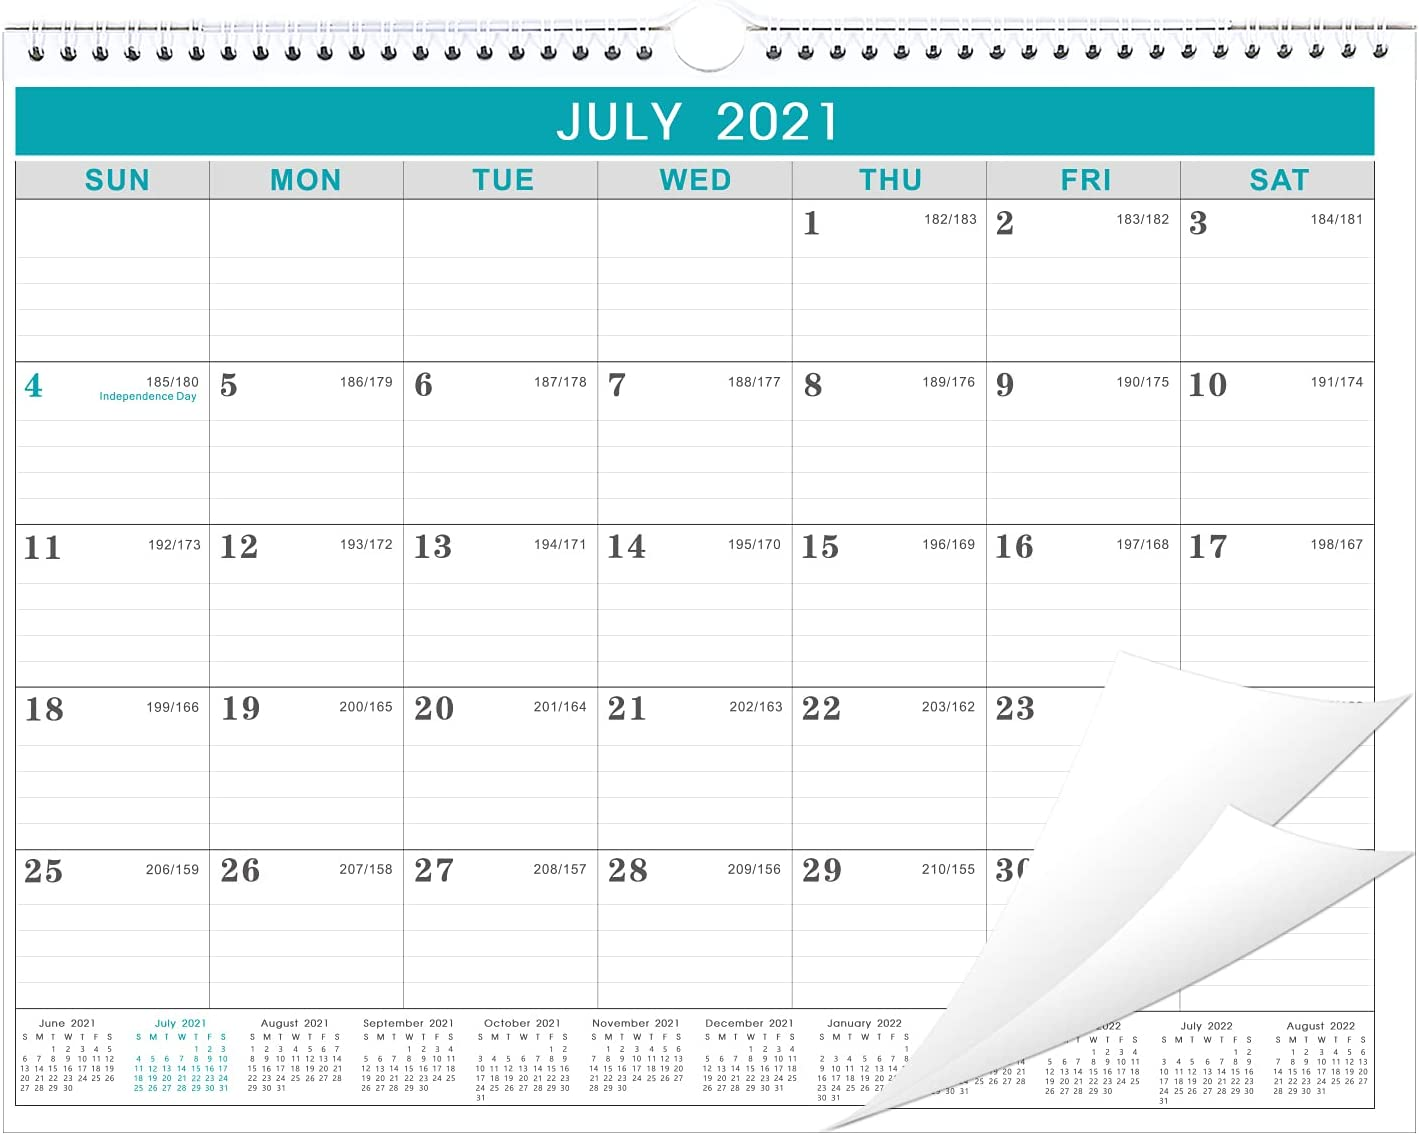 Julian Calendar 2022.Amazon Com 2021 2022 Calendar 2021 2022 Wall Calendar Start In July 2021 Jul 2021 To Dec 2022 18 Months Calendar With Julian Date Thick Paper For Organizing Planning 14 75 X 11 5 Inches Office Products